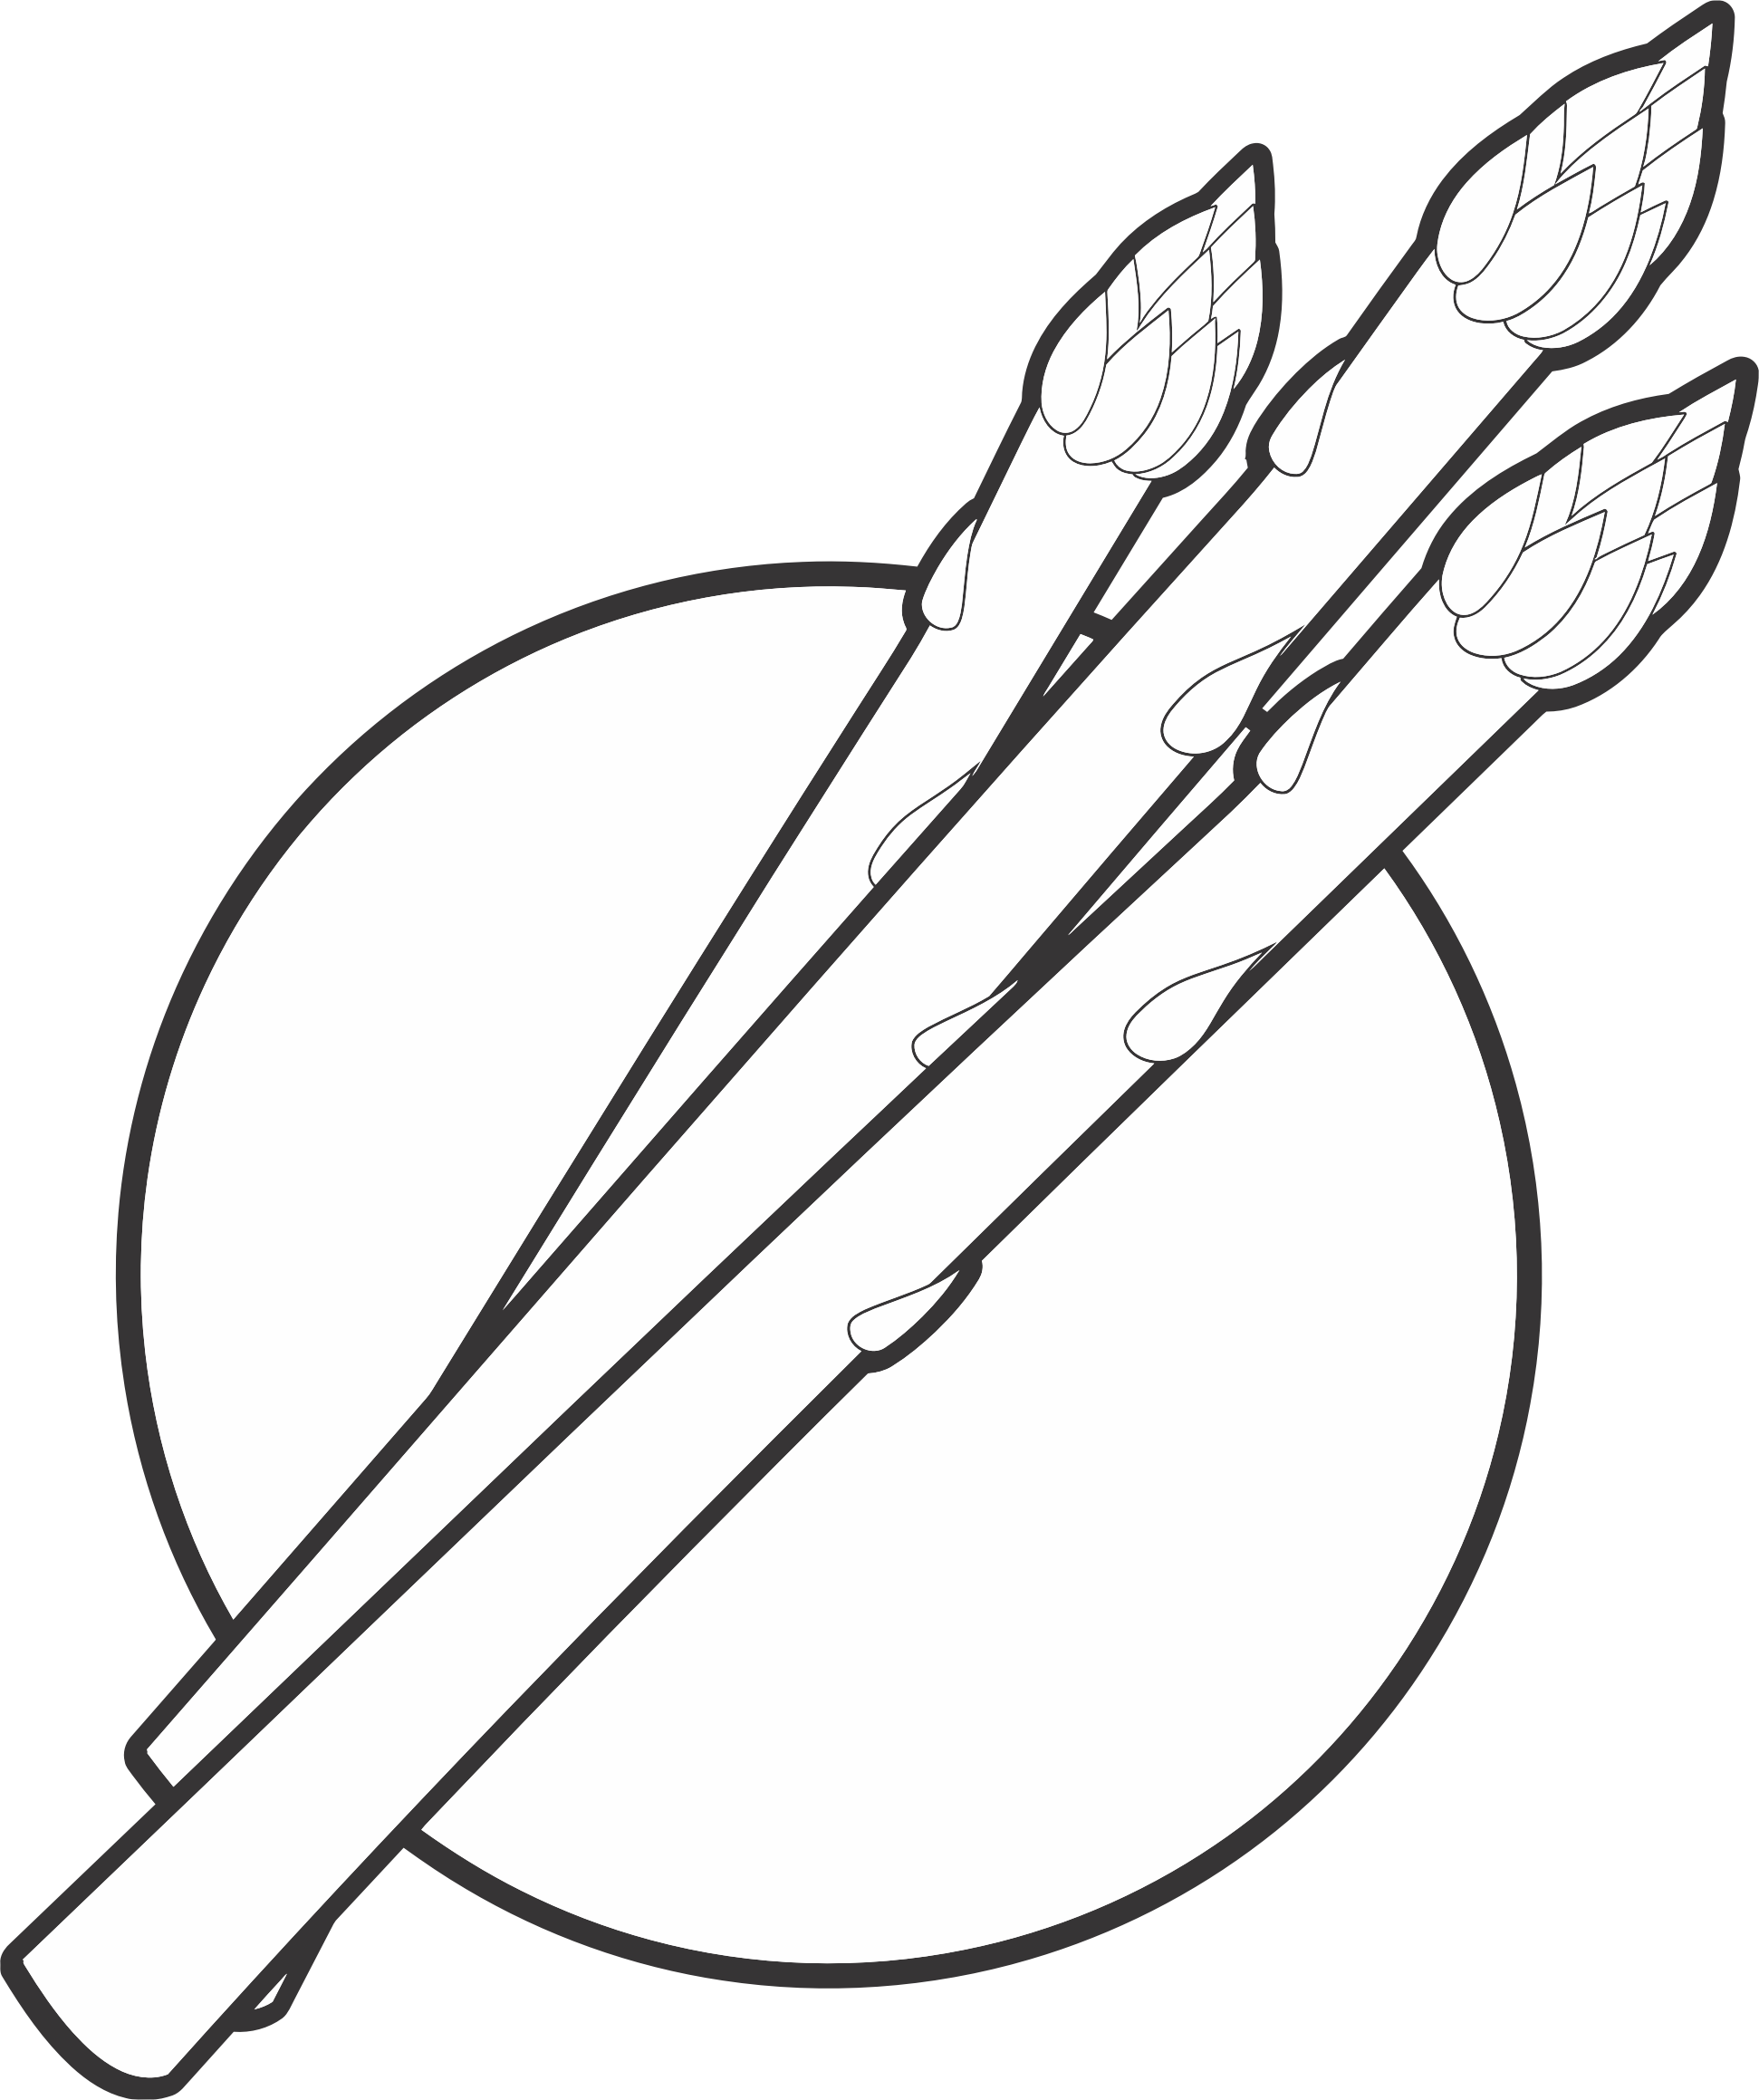 Free Asparagus Clipart Black And White, Download Free Clip.